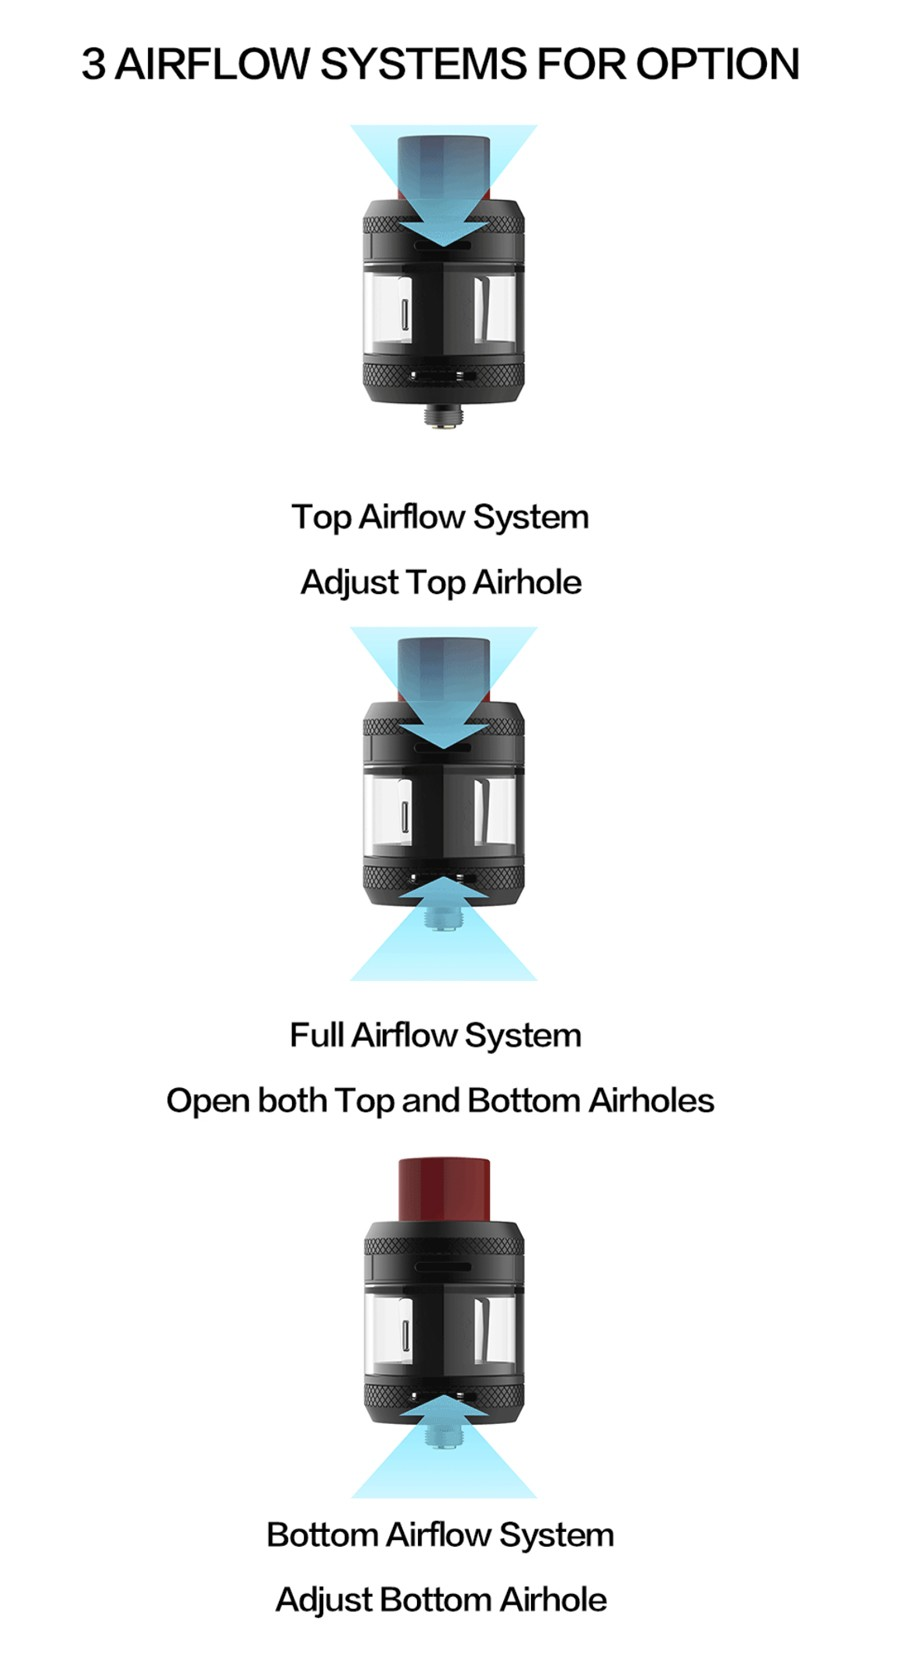 The Fat Rabbit vape tank features both top and bottom adjustable airflow.